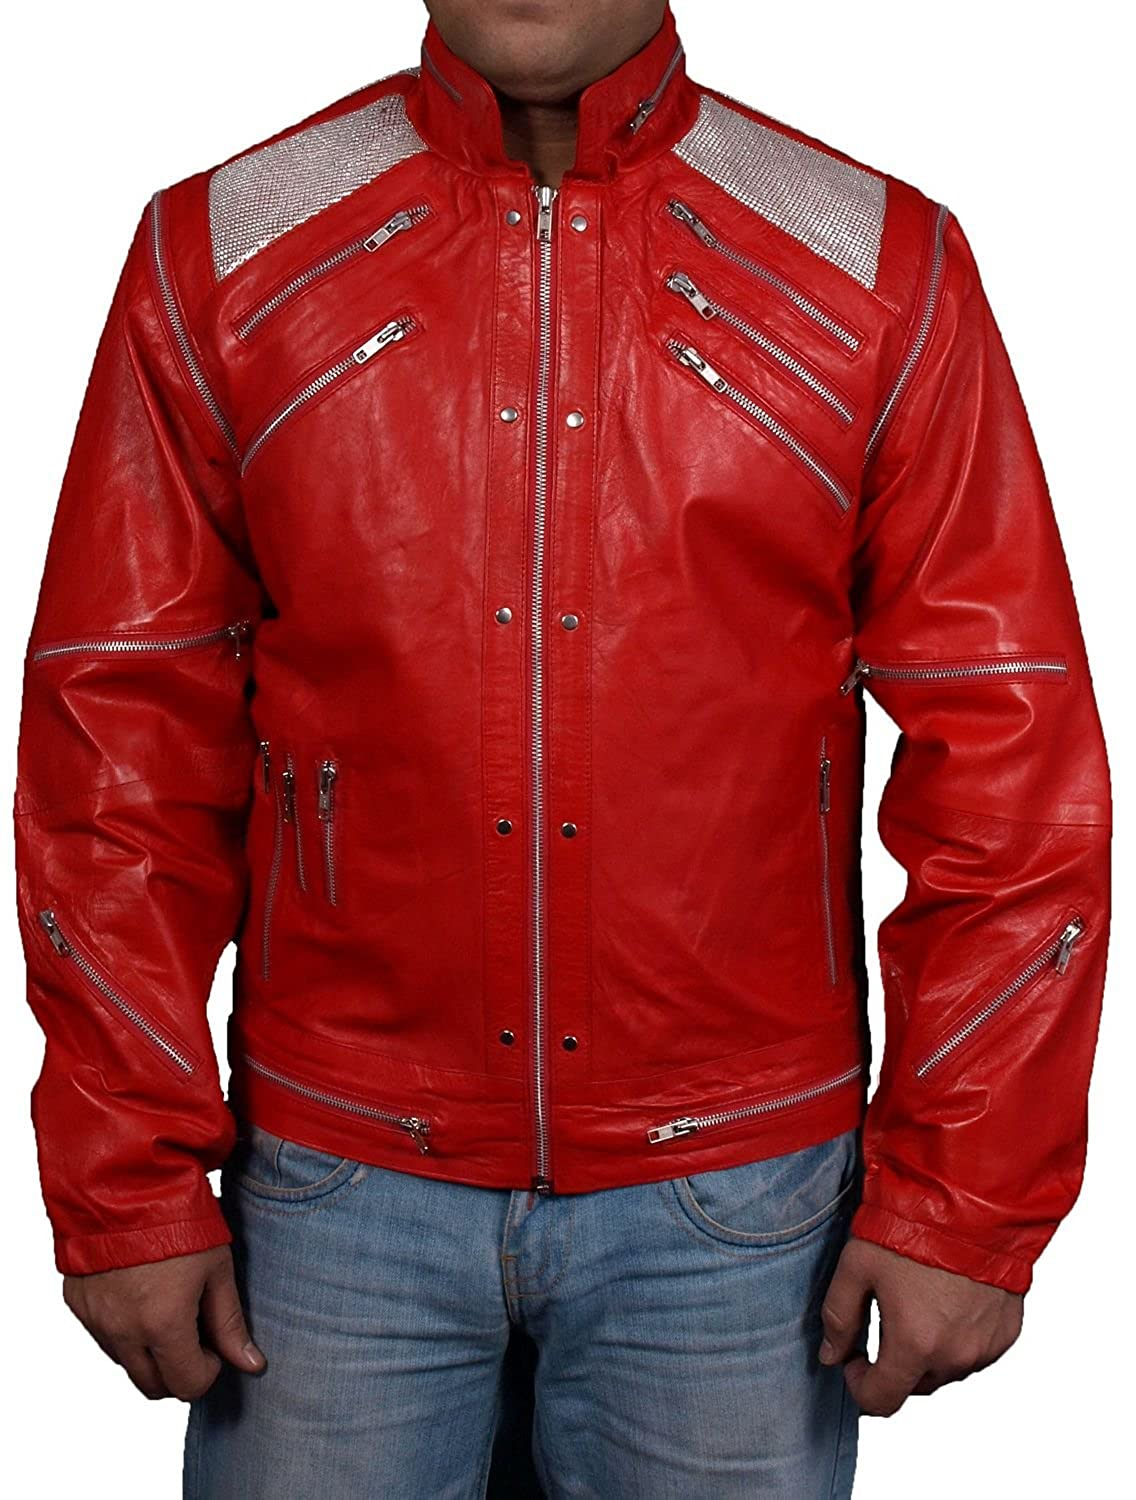 Men's Beat It Sheep Red Leather Jacket